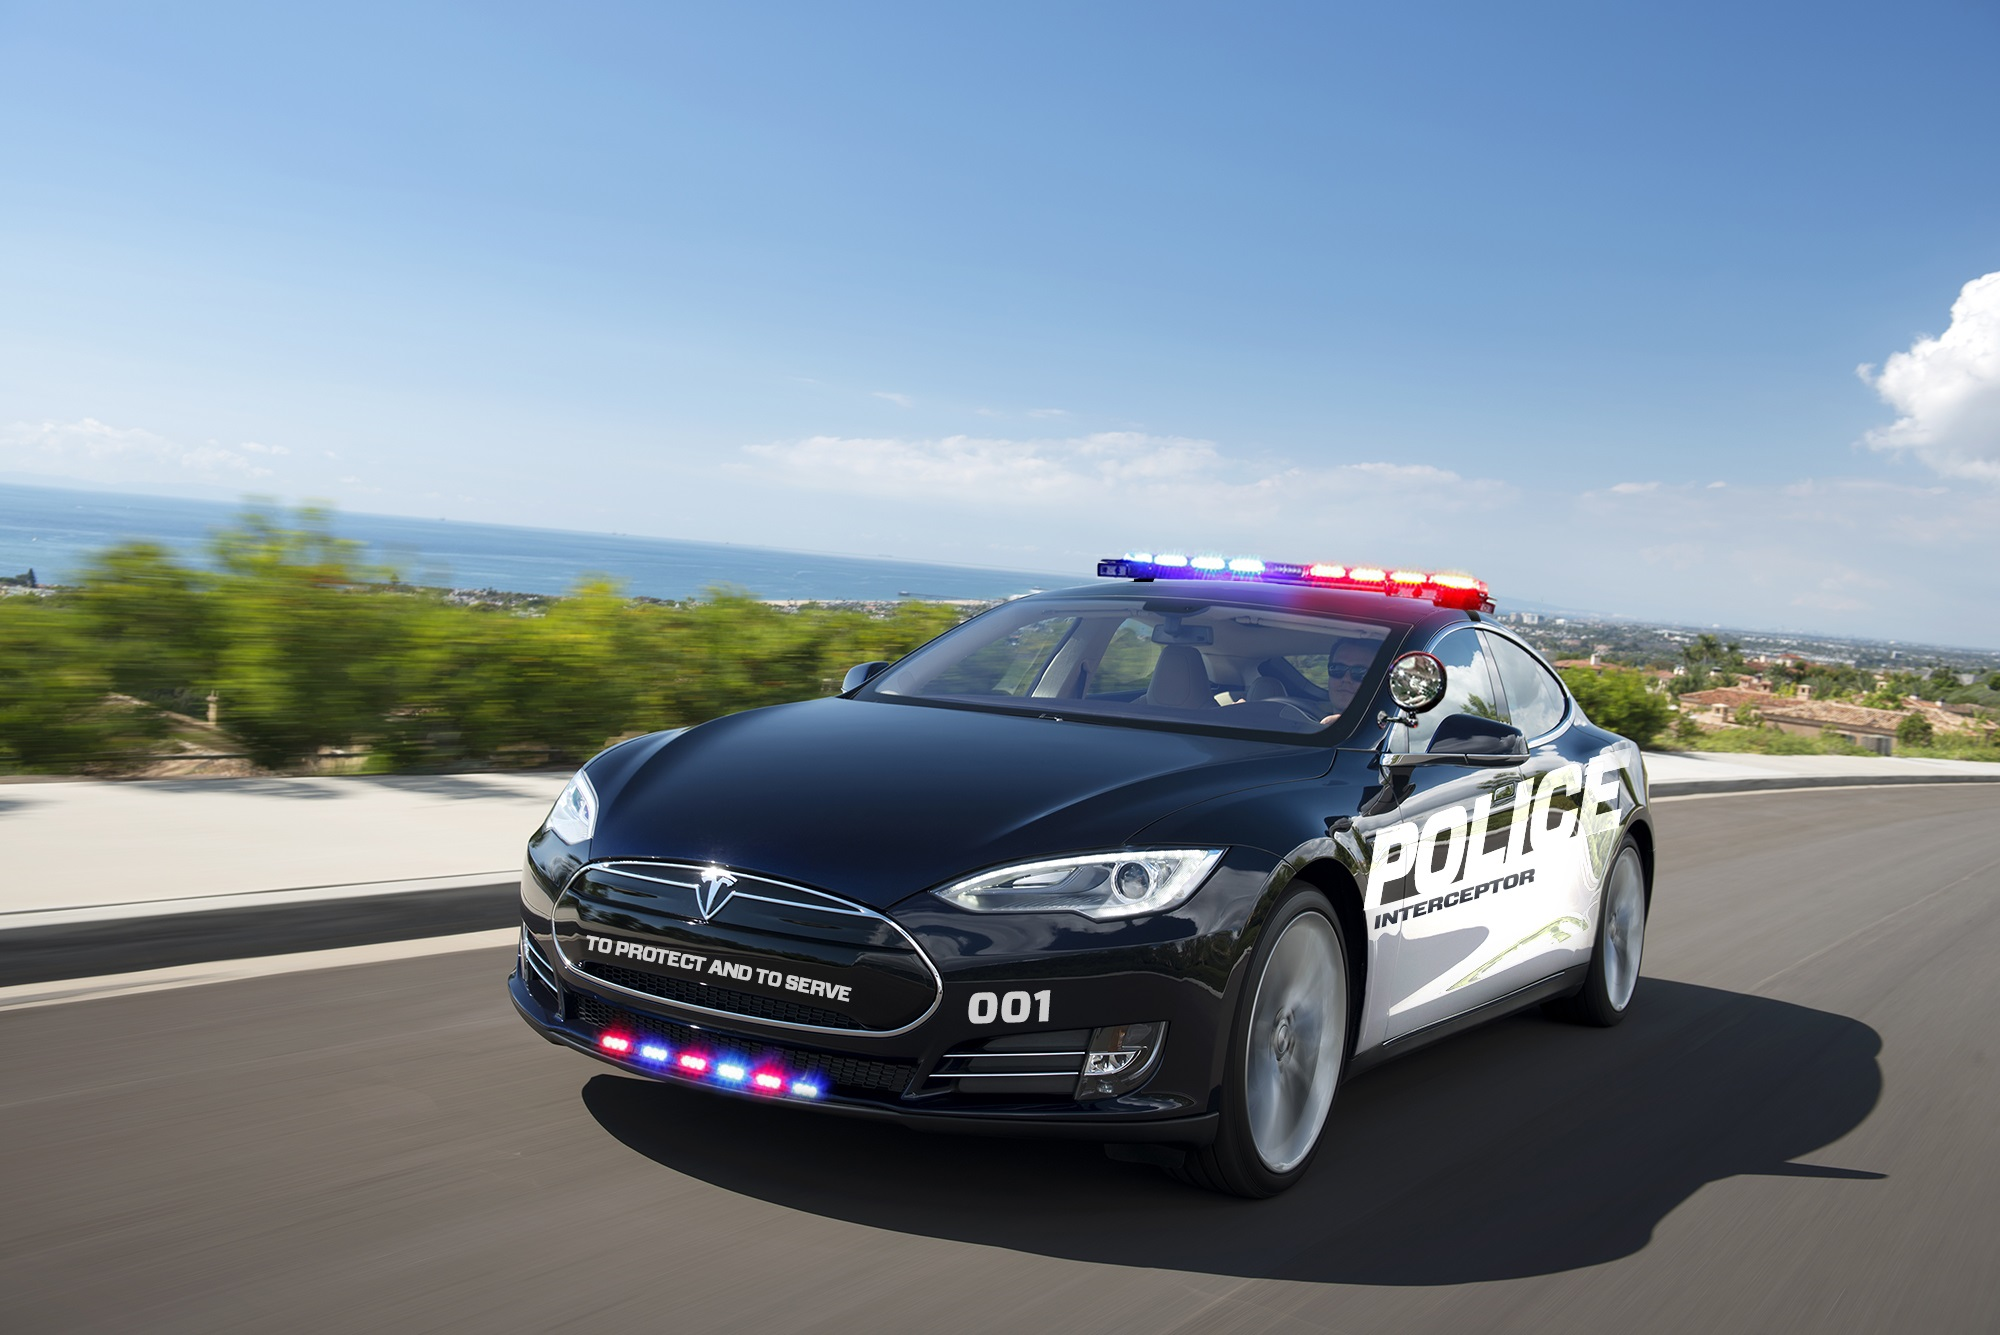 simulation-of-tesla-model-s-as-a-police-